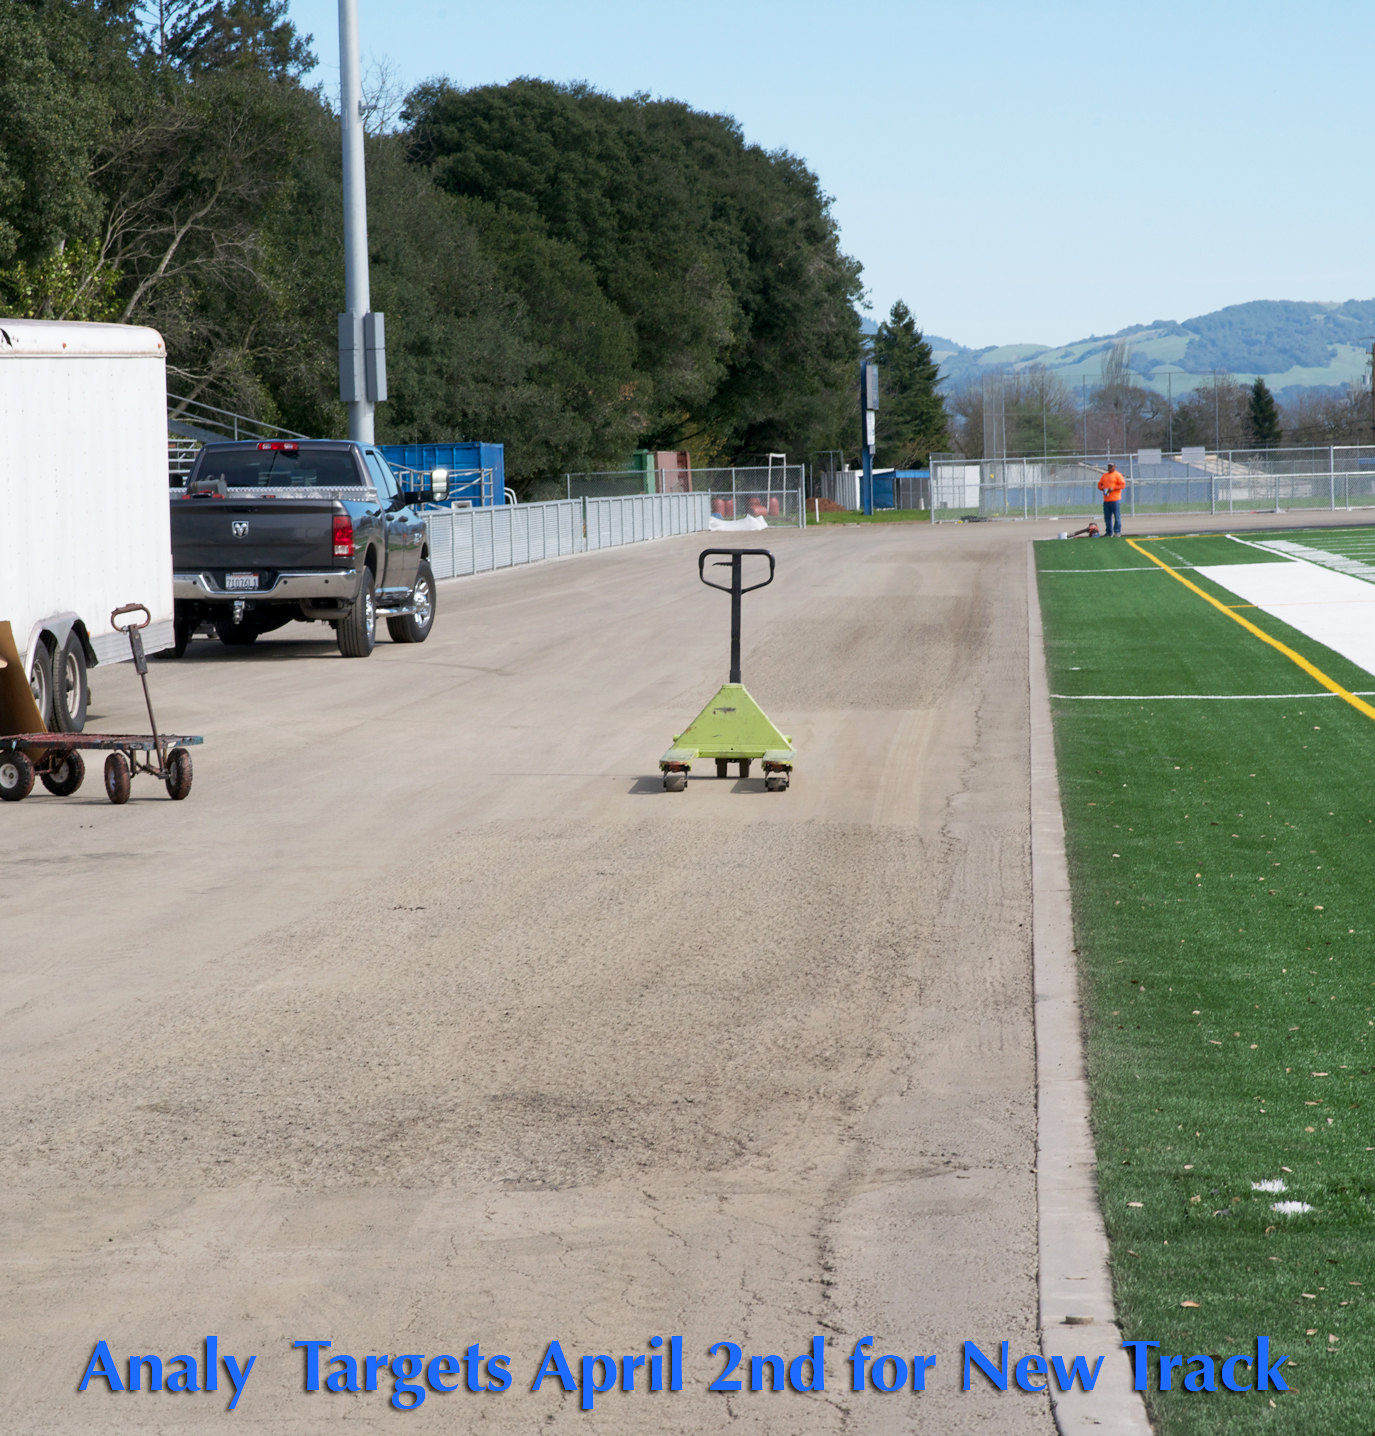 Here is a shot of the Analy track construction as of Feb. 26th.